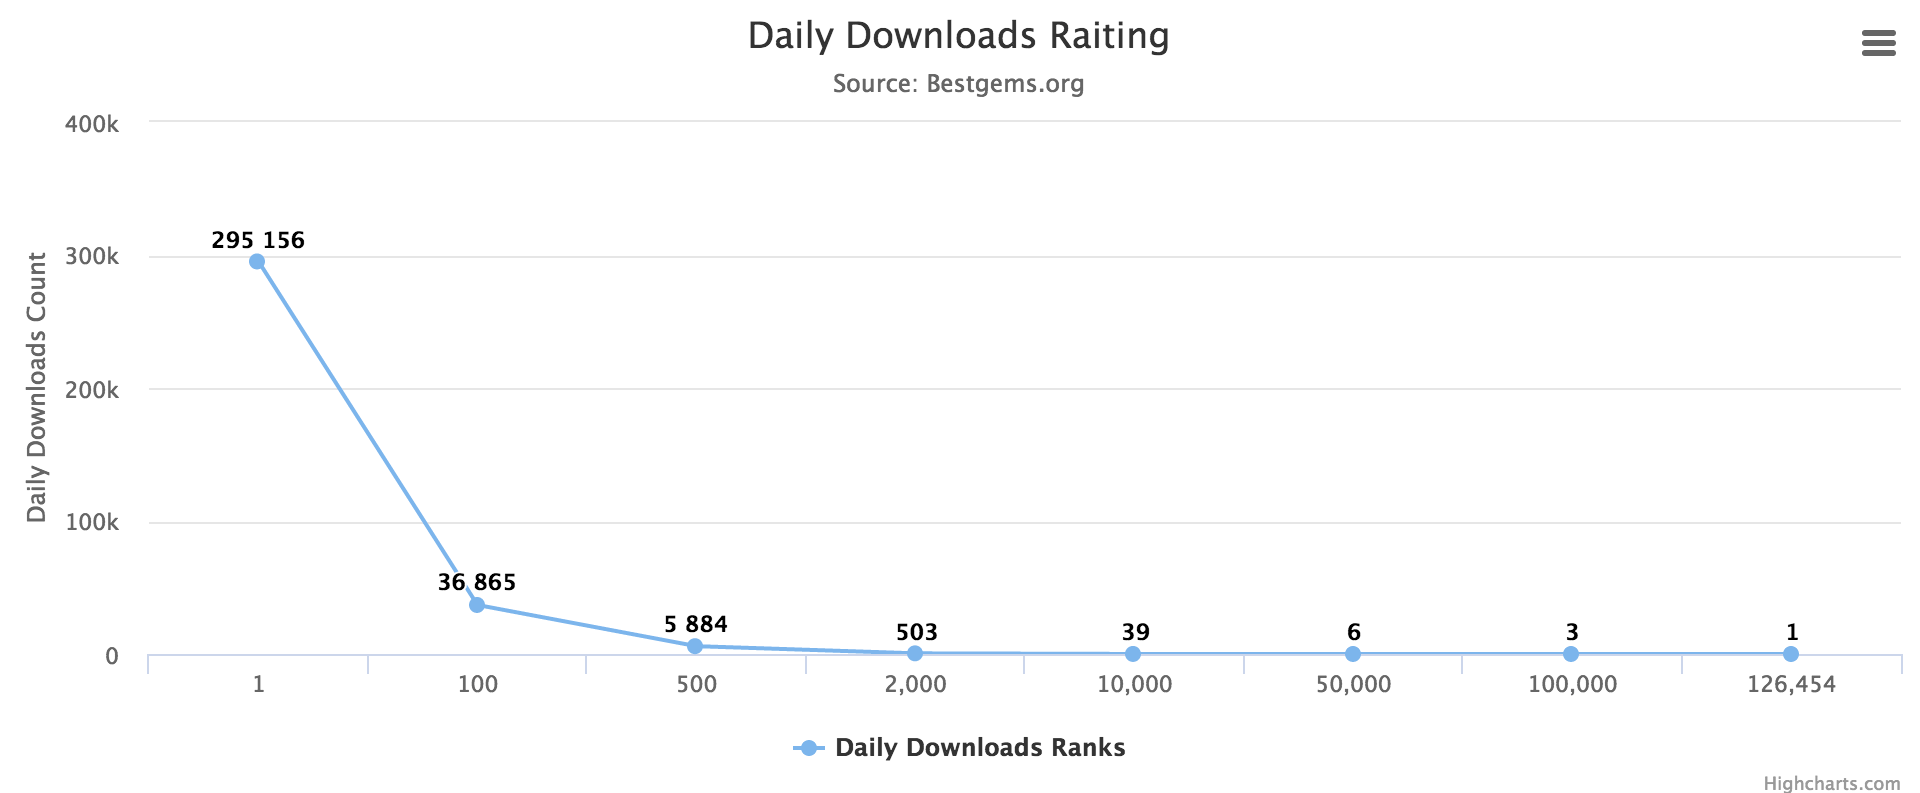 Daily Downloads Rating